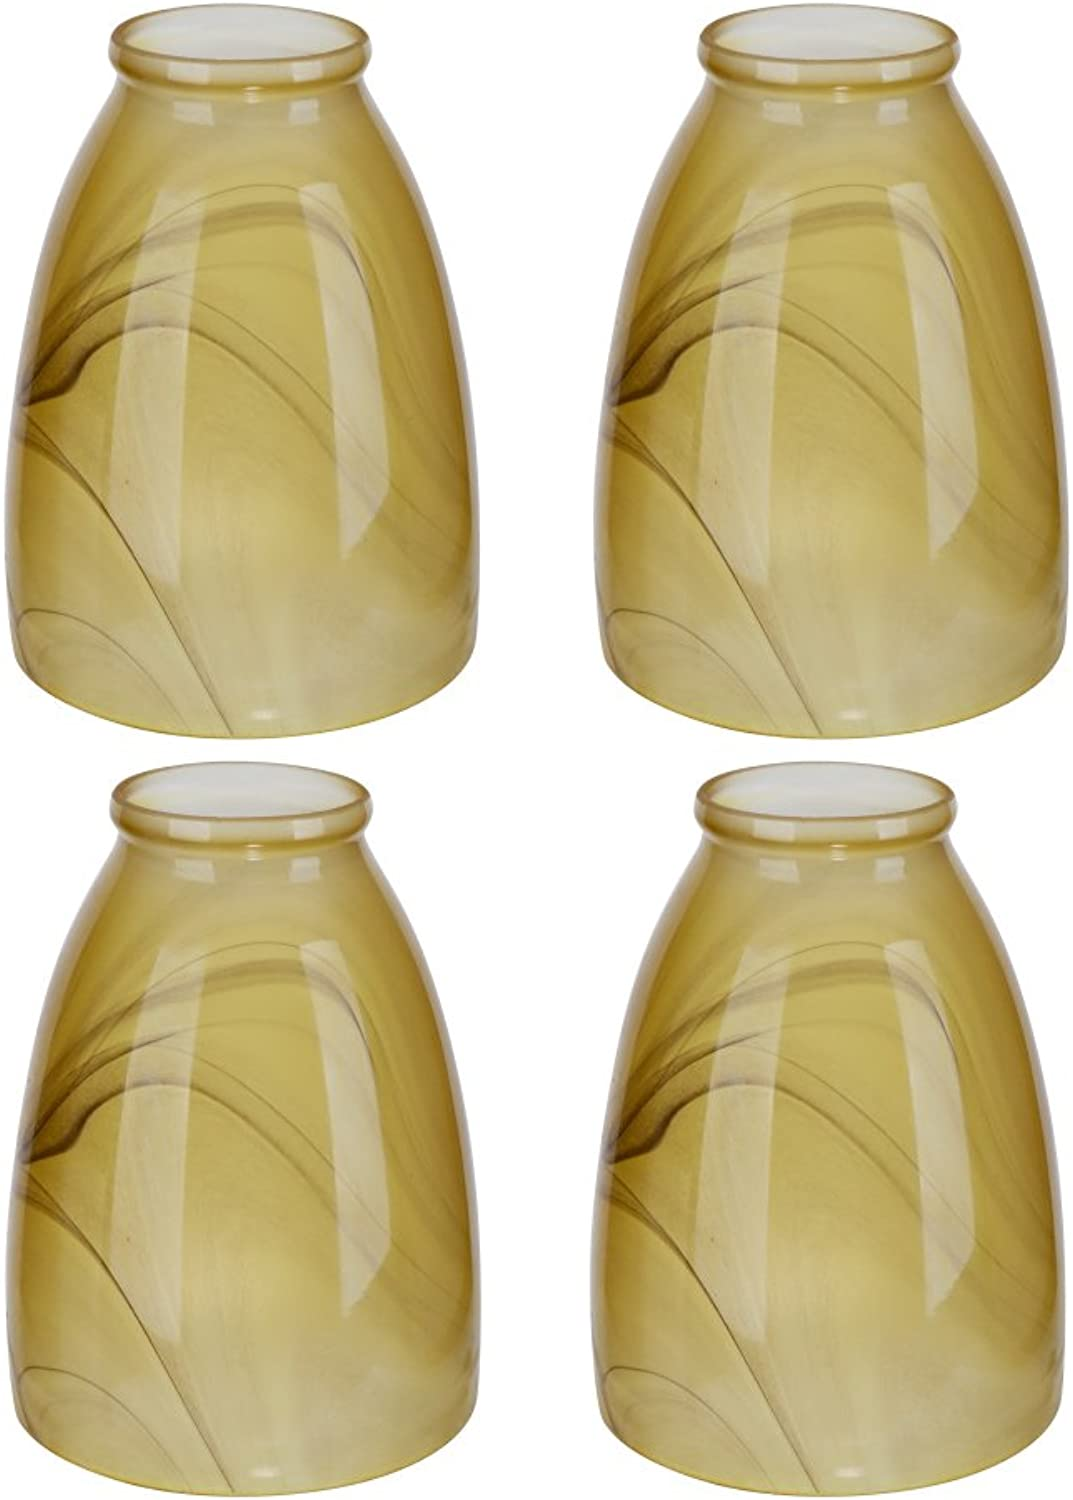 Aspen Creative 23006-4 2-1 8  Fitter Size 5-1 4  high x 4-1 8  Diameter Transitional Style Replacement Amber Swirl Art Glass Shade (4 Pack)